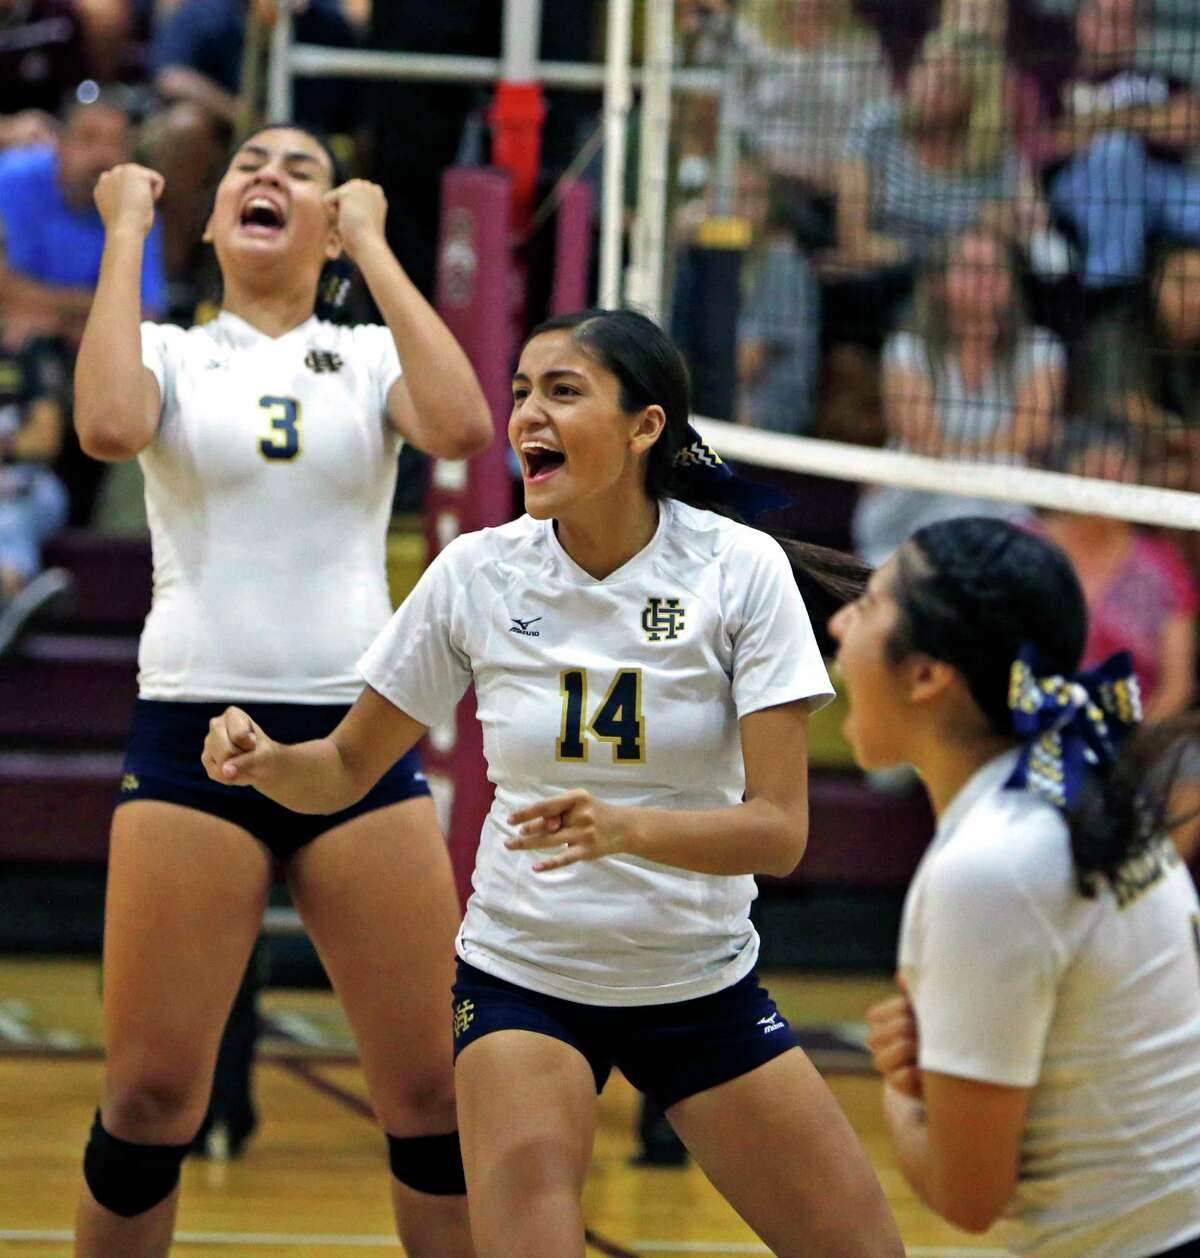 Noelia Rocha: Jefferson volleyball: 27 kills, 8 aces, 14 digs combined in wins over Medina Valley and Alamo Heights